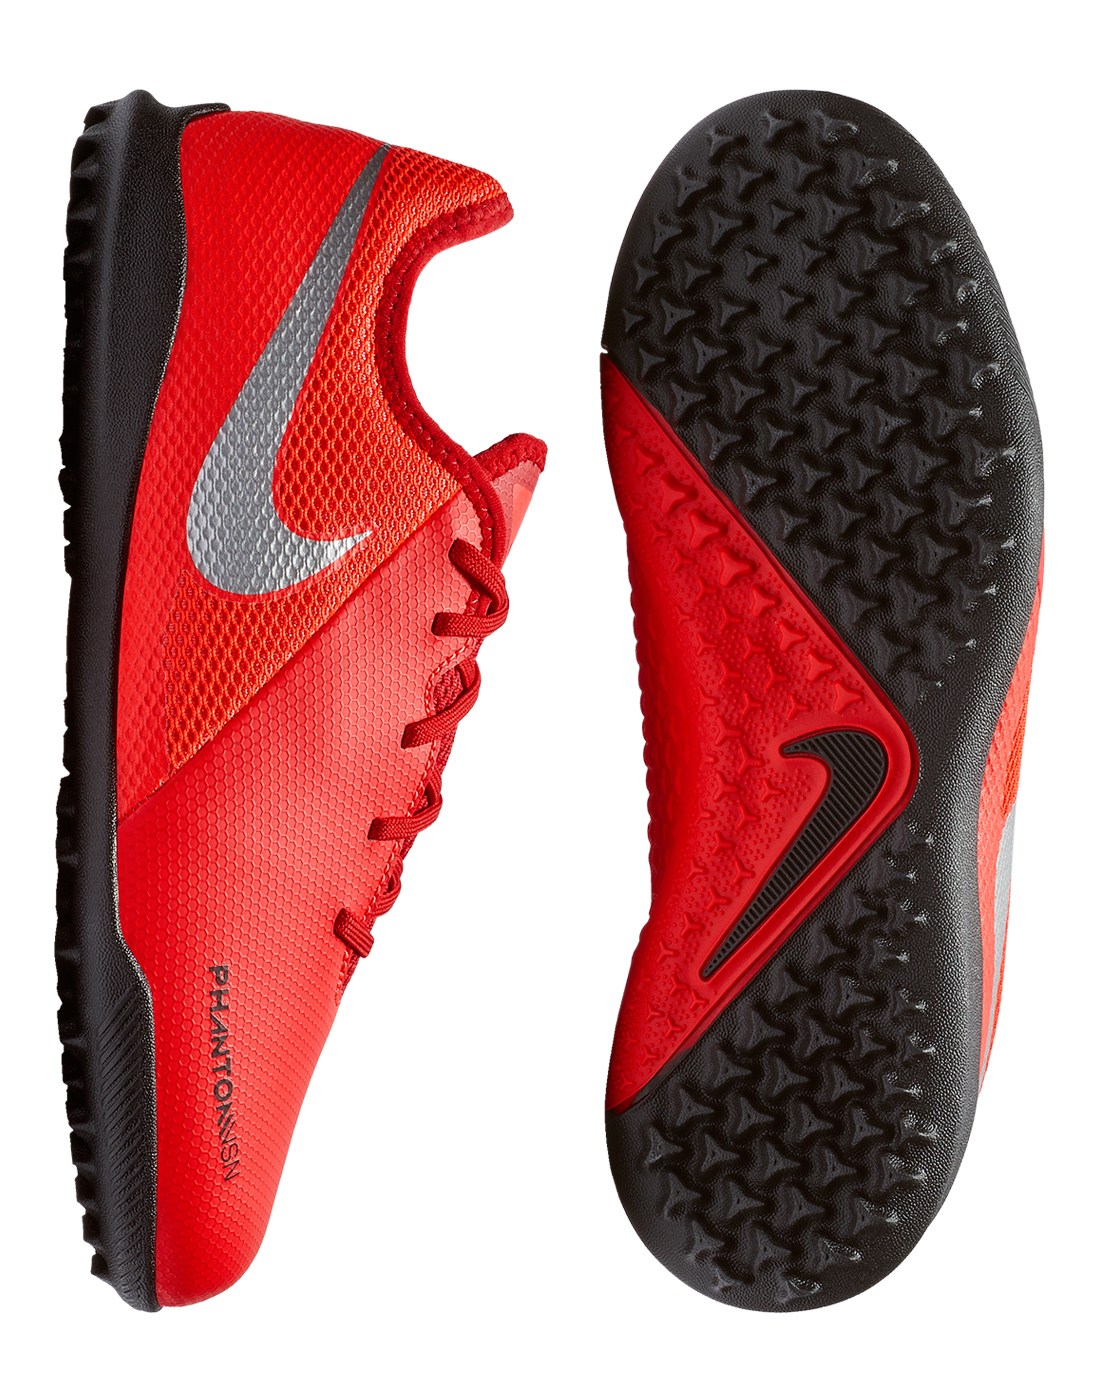 581a3a7e49 Kid's Red Nike Phantom Vision Academy | Game Over Pack | Life Style ...